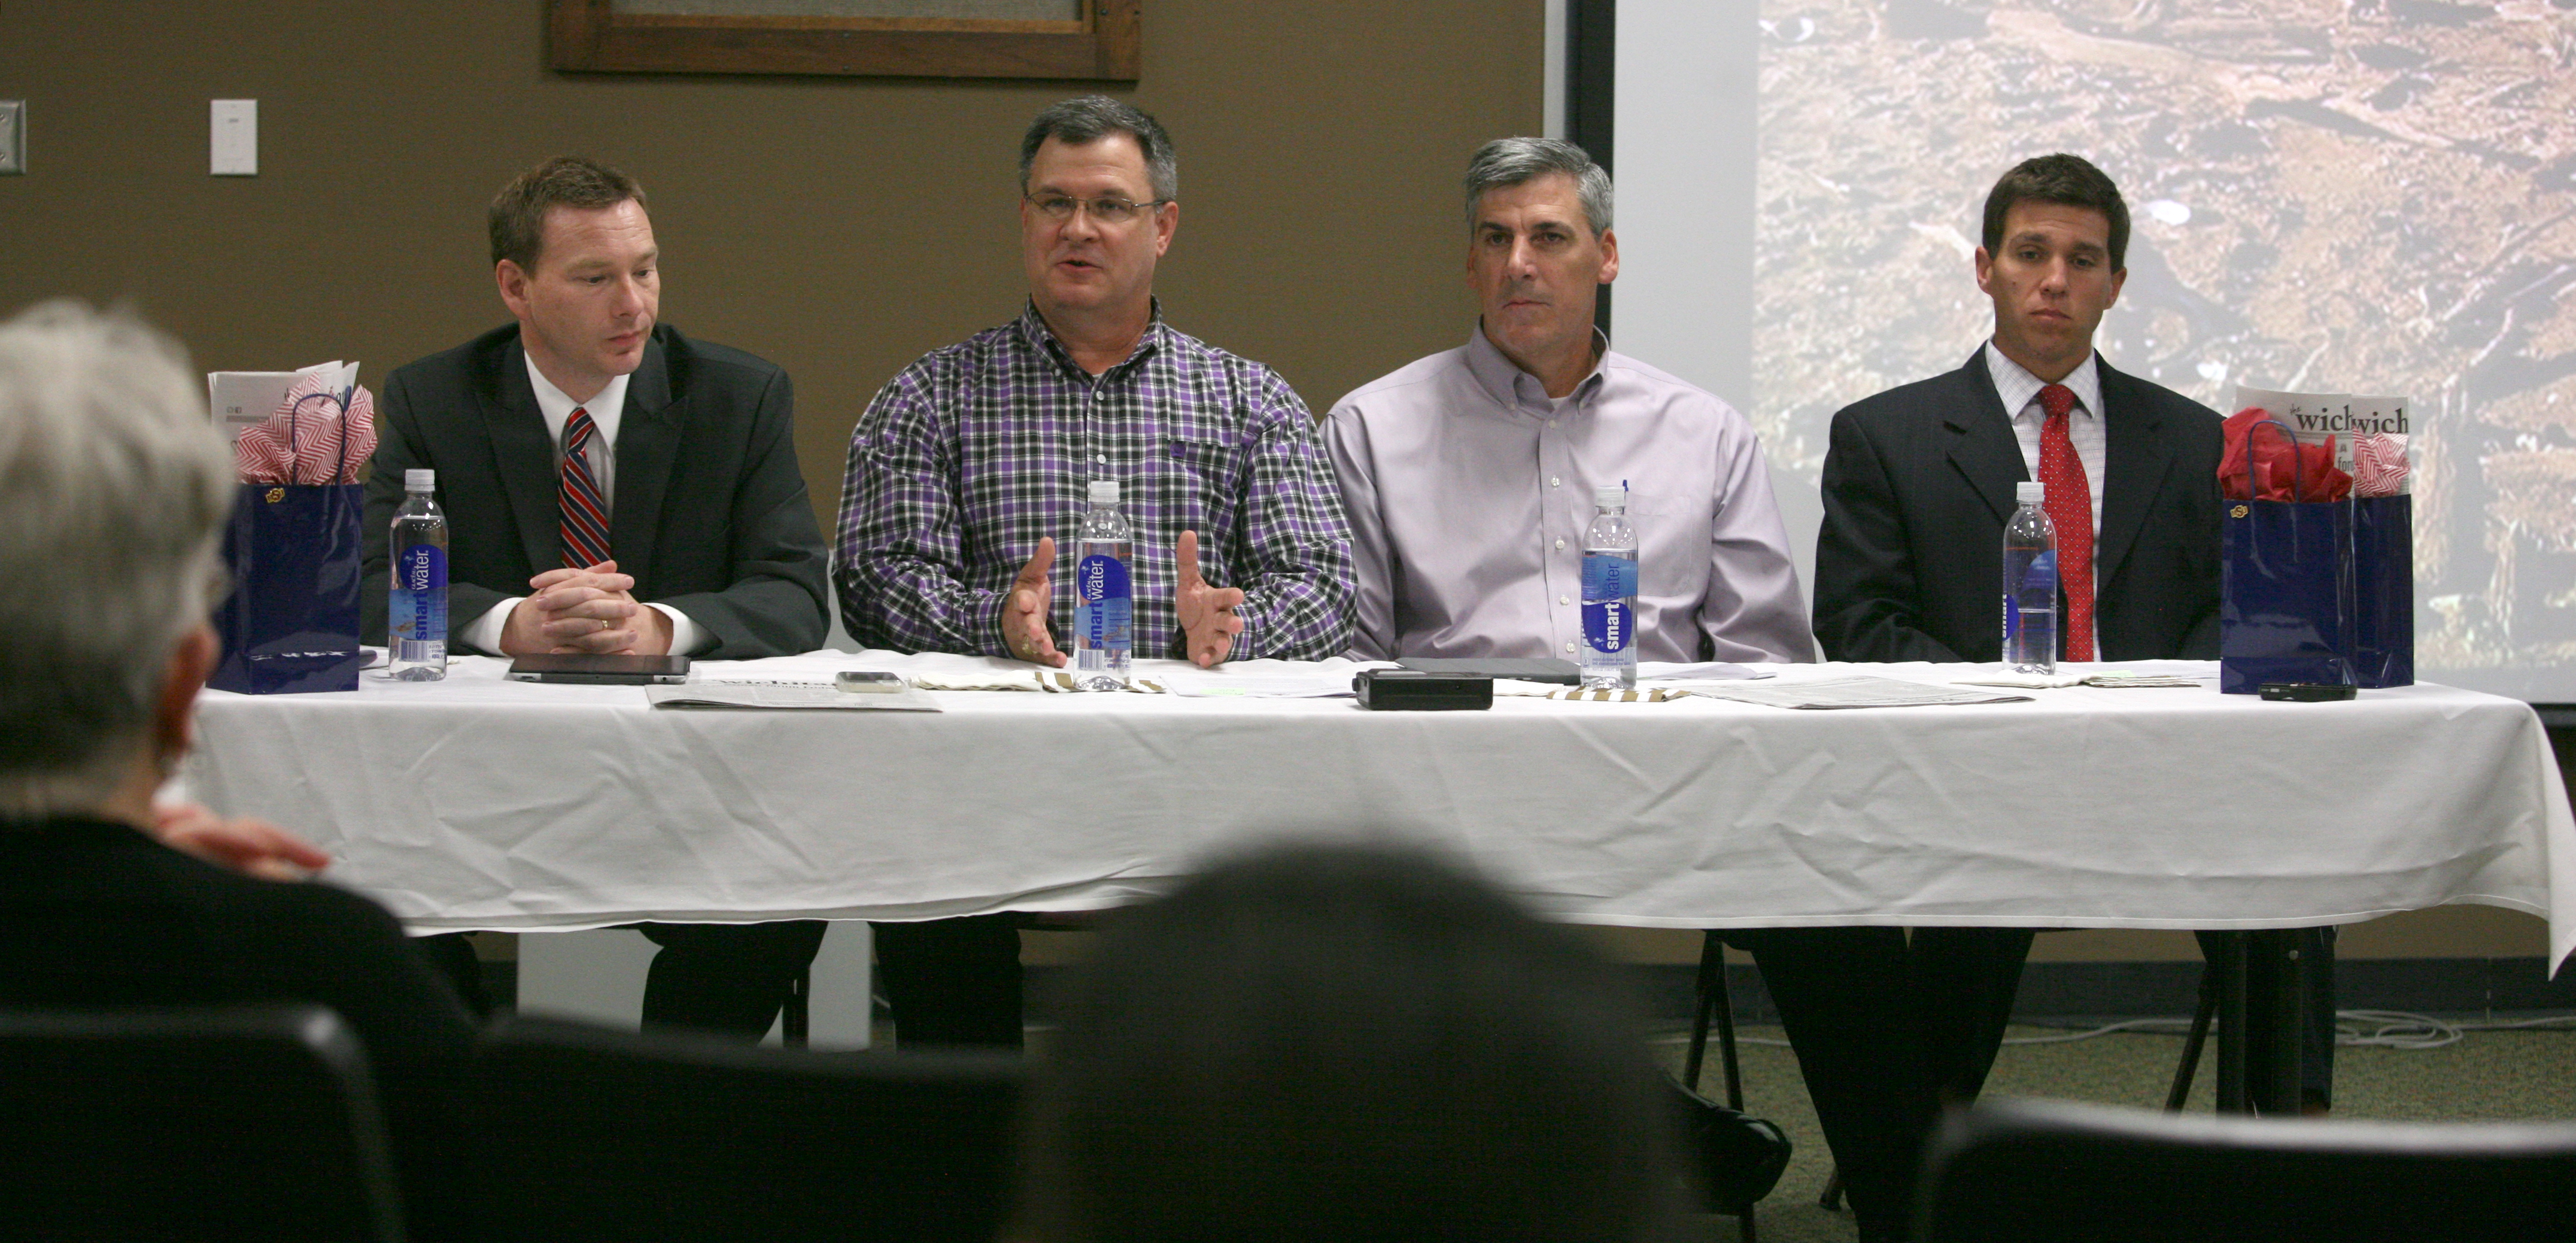 Panel discusses drought disaster with students